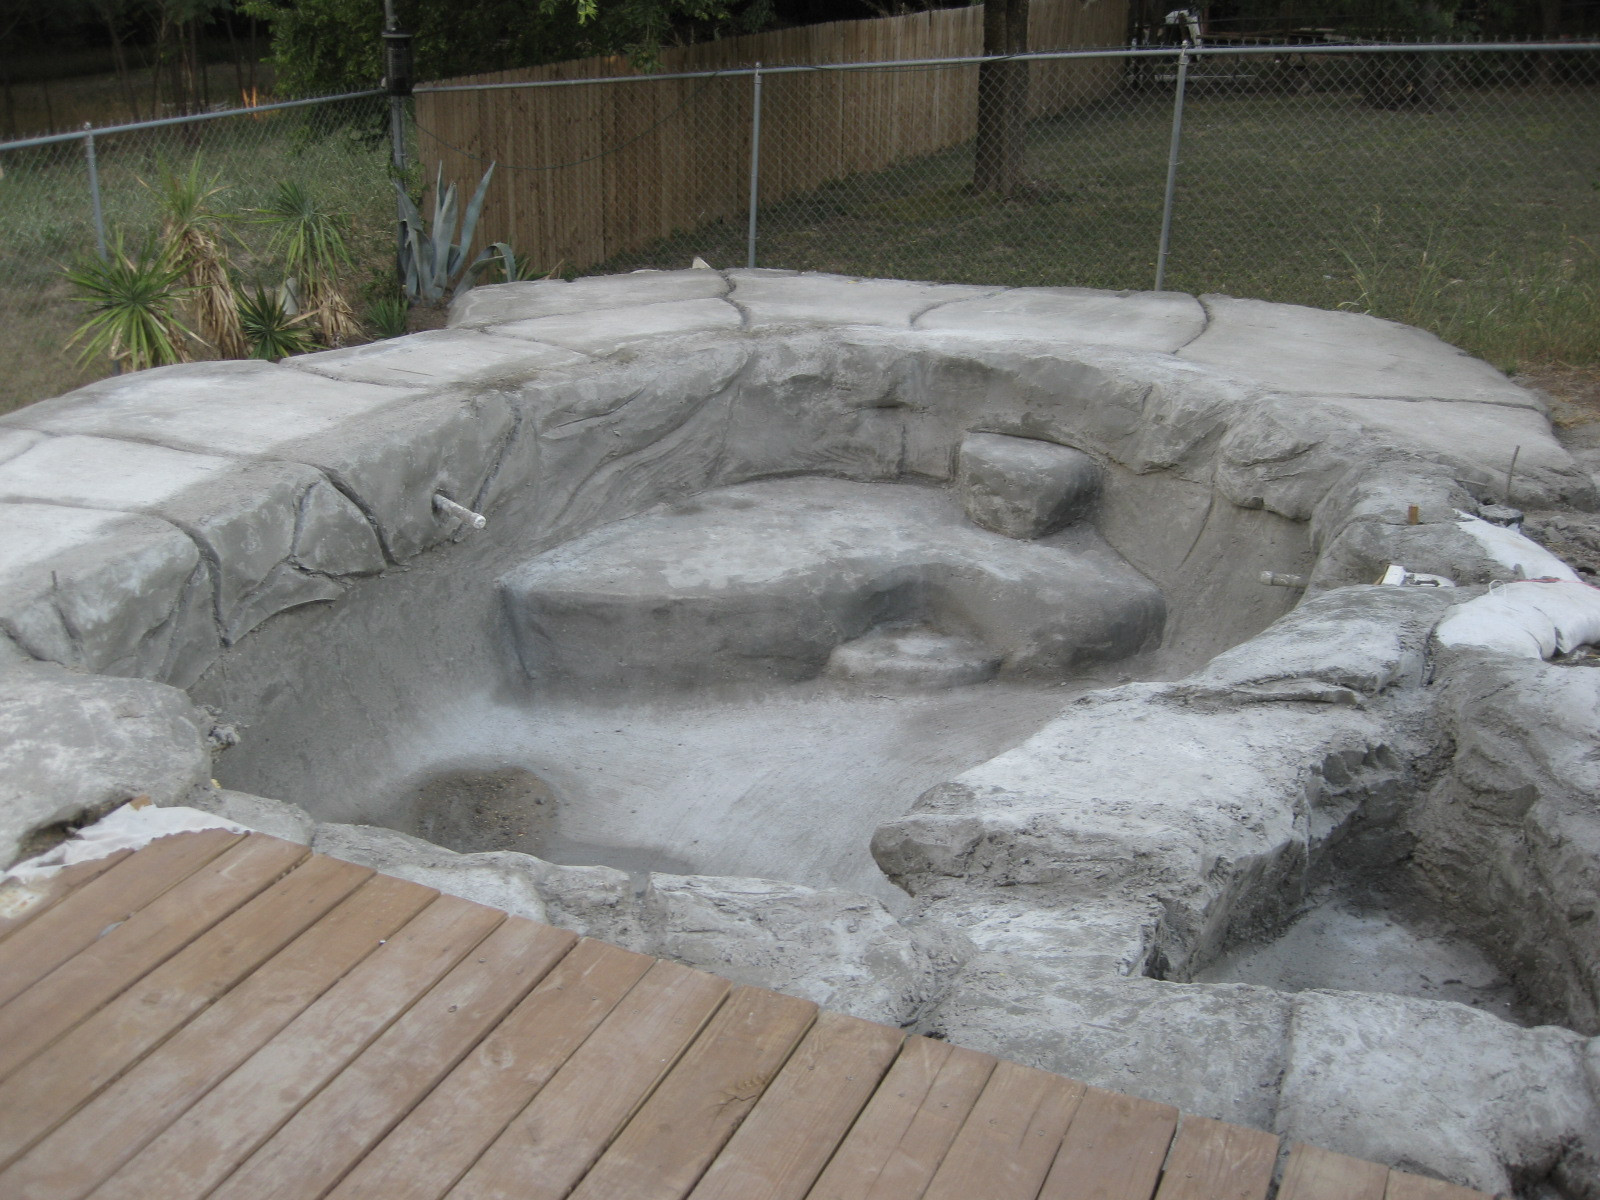 The week after shotcrete..Yes.. it takes a week for this stuff to dry.. and there's a certain recipe you must follow for keeping it moist in the August sun. My wife said that it looked like a pengin habitat at the zoo.. couldn't argue